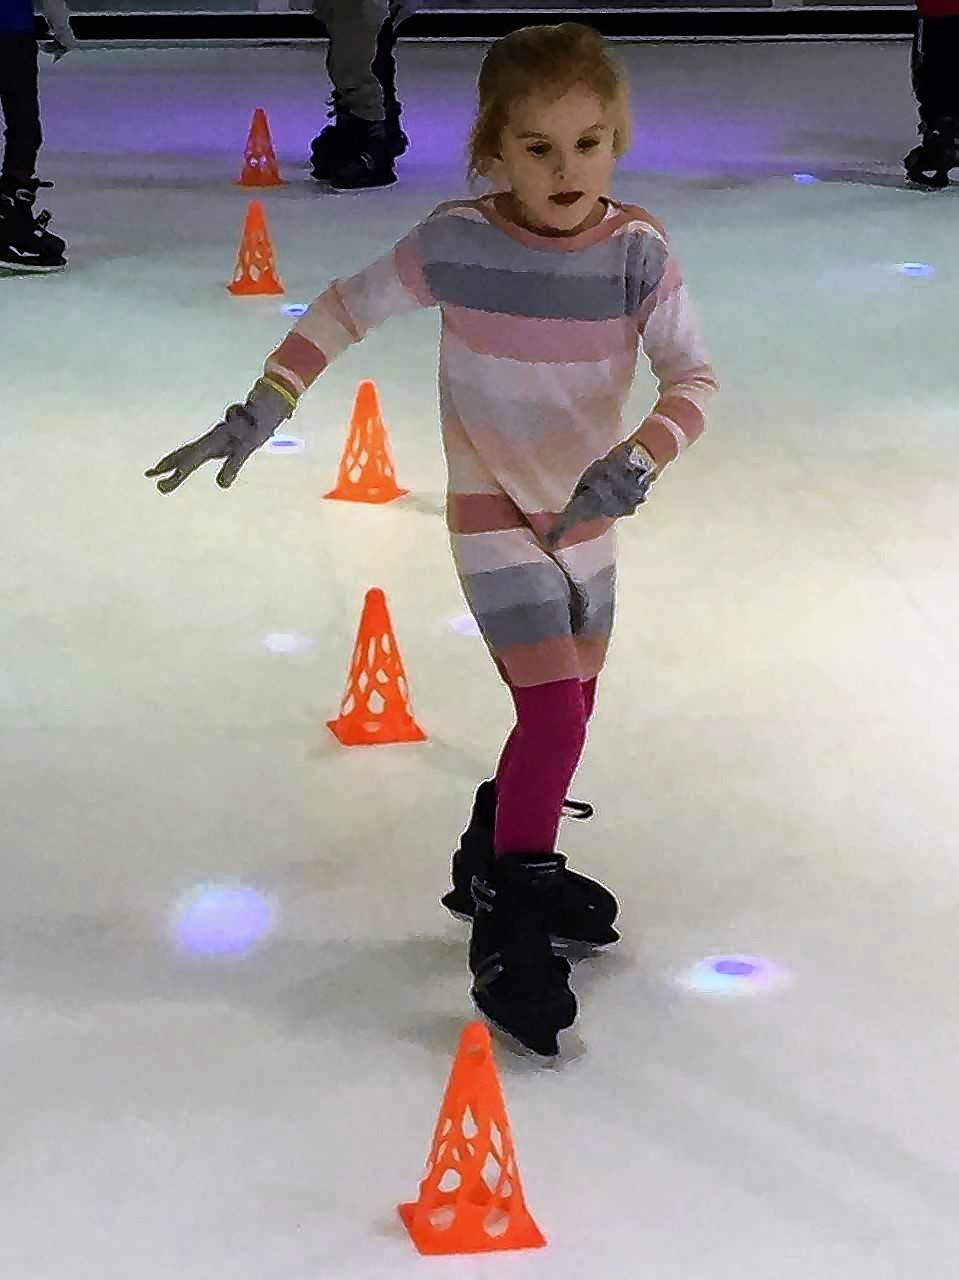 Vernon Hills Montessori Academy student Penny Zawadzki navigates the new Skate Room ice skating rink in Hawthorn Mall in Vernon Hills. The rink uses synthetic ice tiles instead of traditional ice.